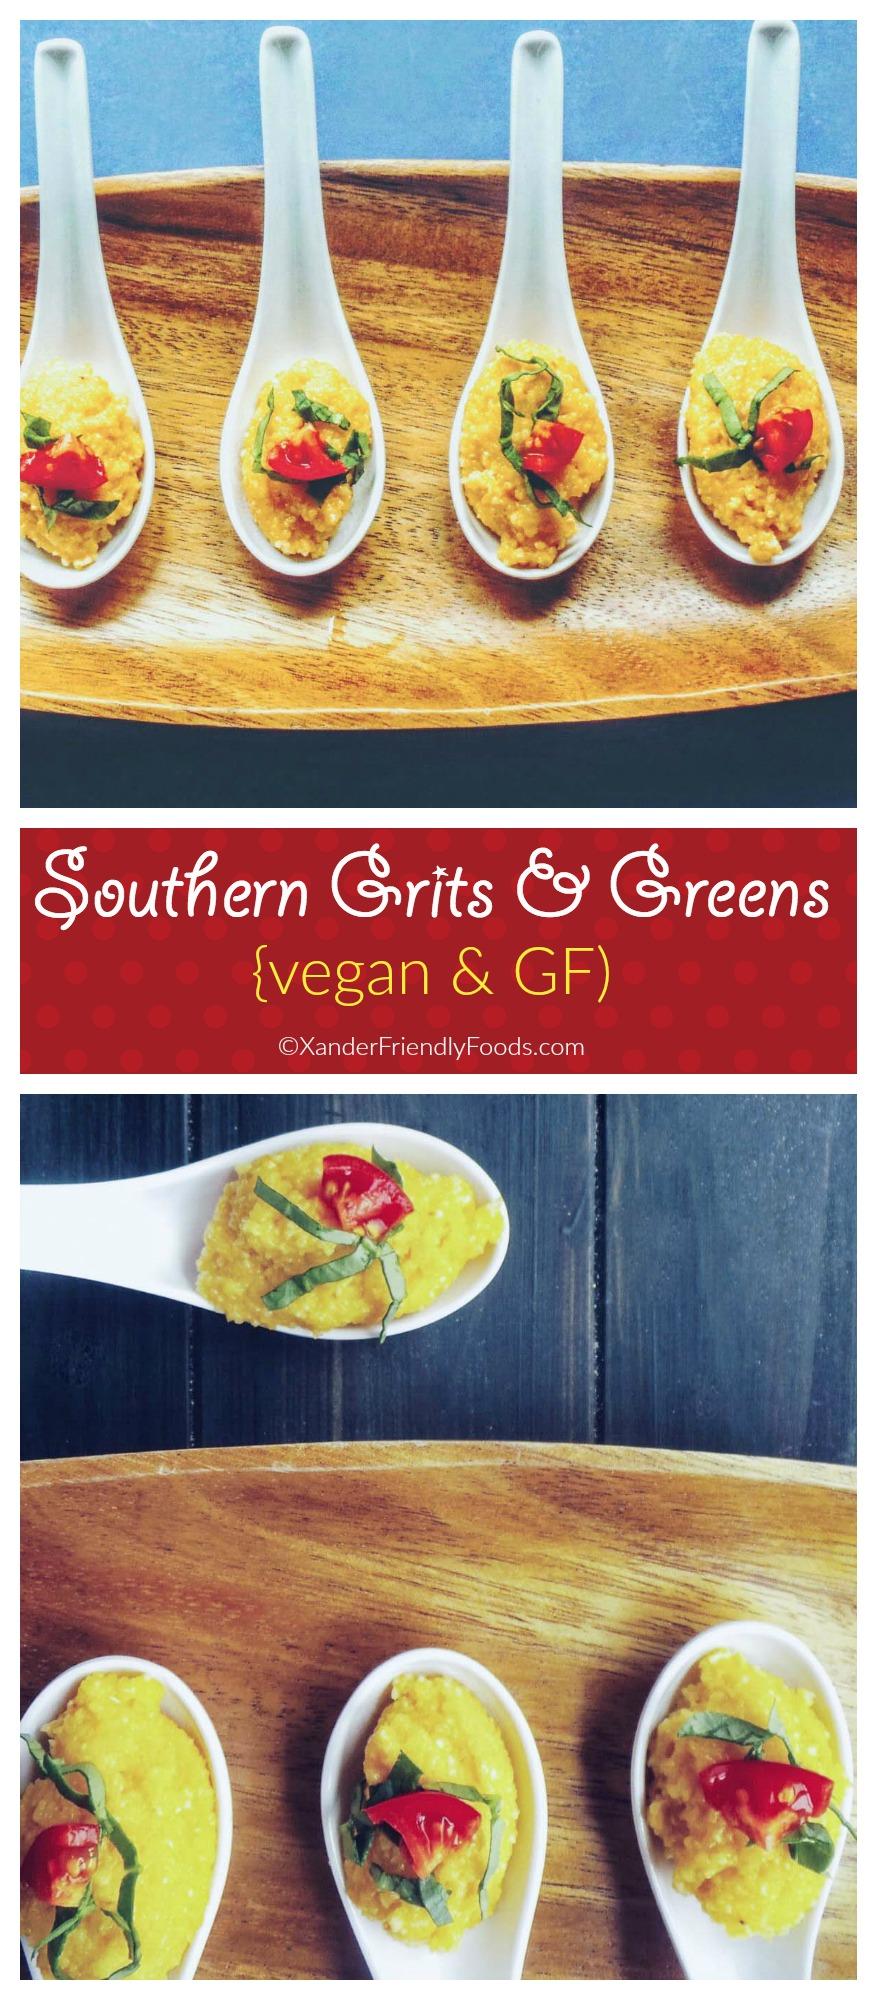 Vegan & Gluten Free, Southern Style Grits